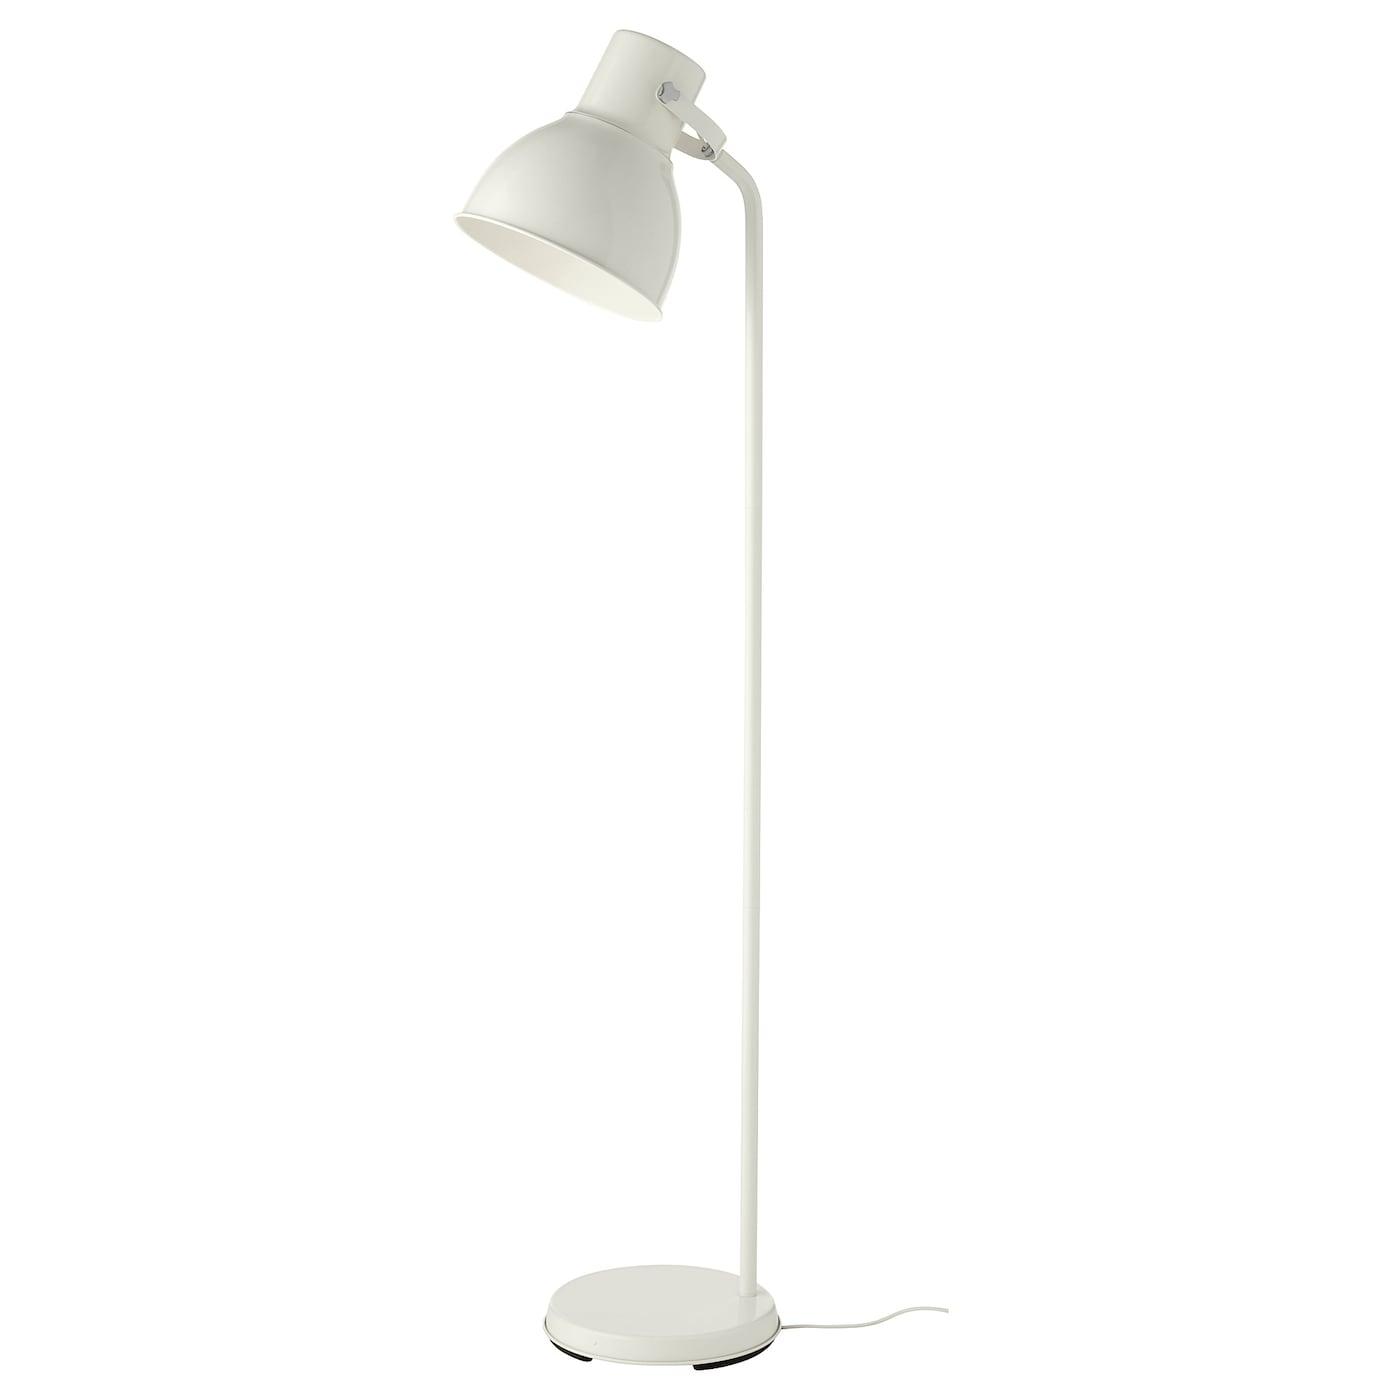 lamp white bedroom up room lamps floor for innovation stand lights top killer tall living cool affordable